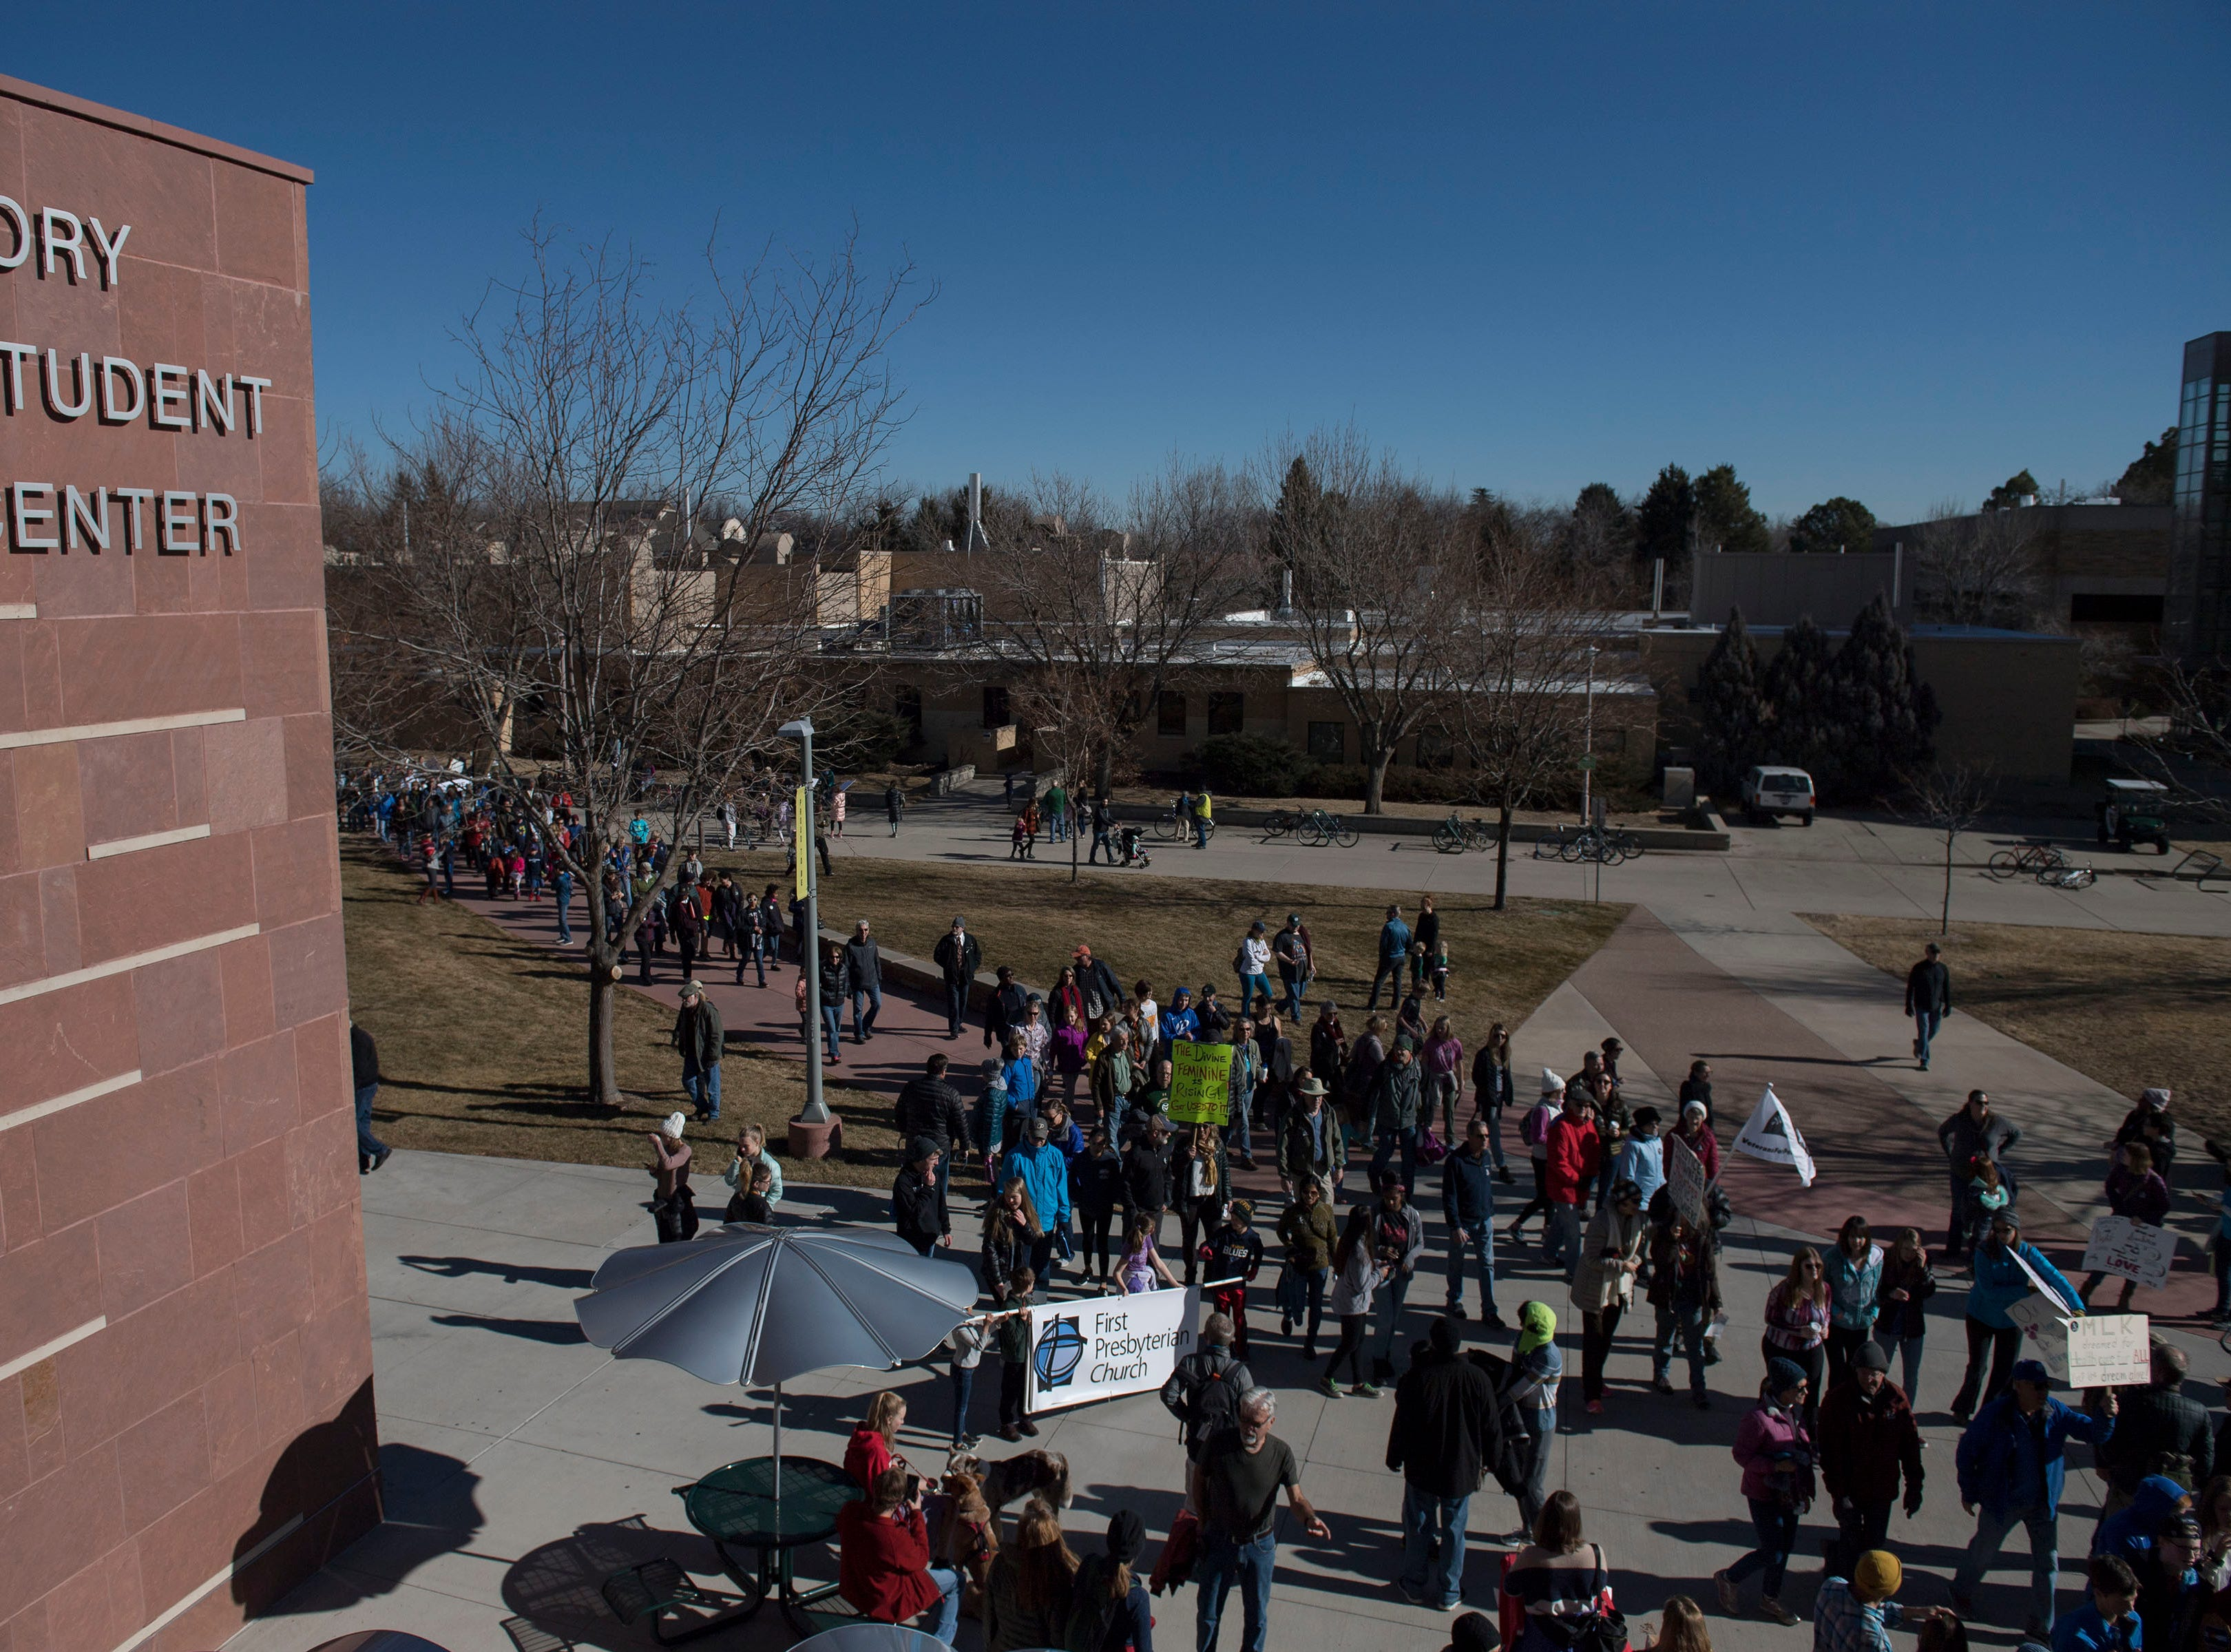 March participants walk into the Lory Student Center during the Dr. Martin Luther King, Jr. March & Celebration on Monday, Jan. 21, 2019, on the Colorado State University campus in Fort Collins, Colo.